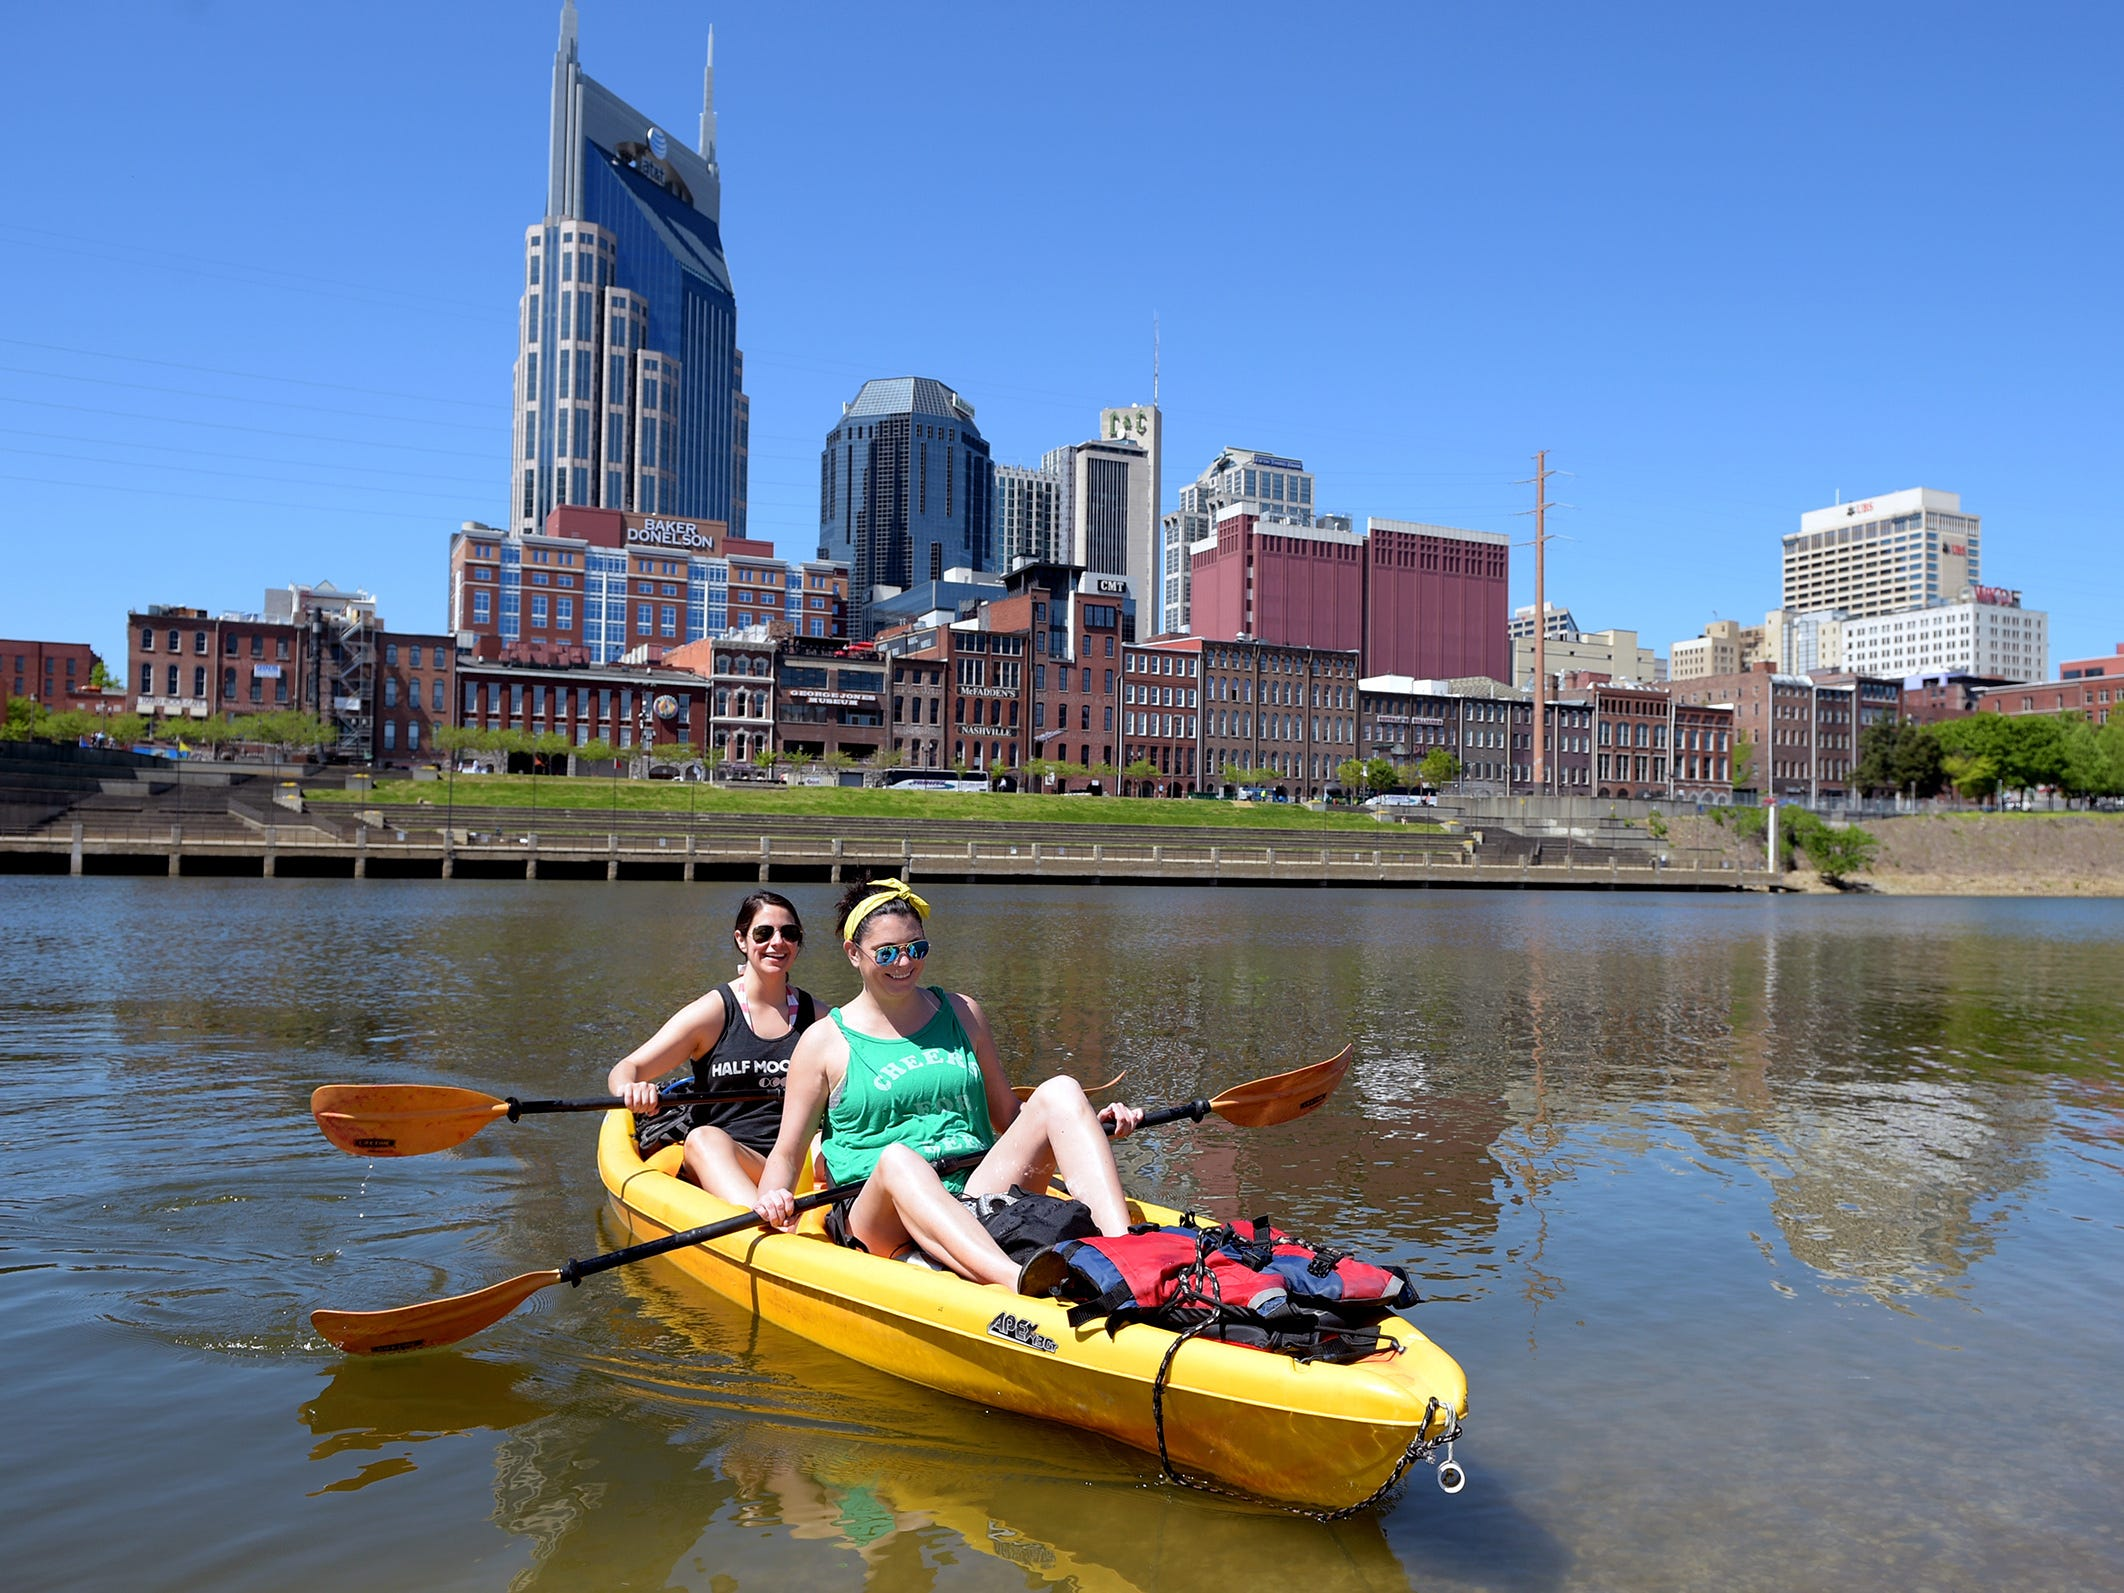 Erin Kette and Justine Auila take a canoe trip down the Cumberland River on April 17, 2016 in downtown Nashville.